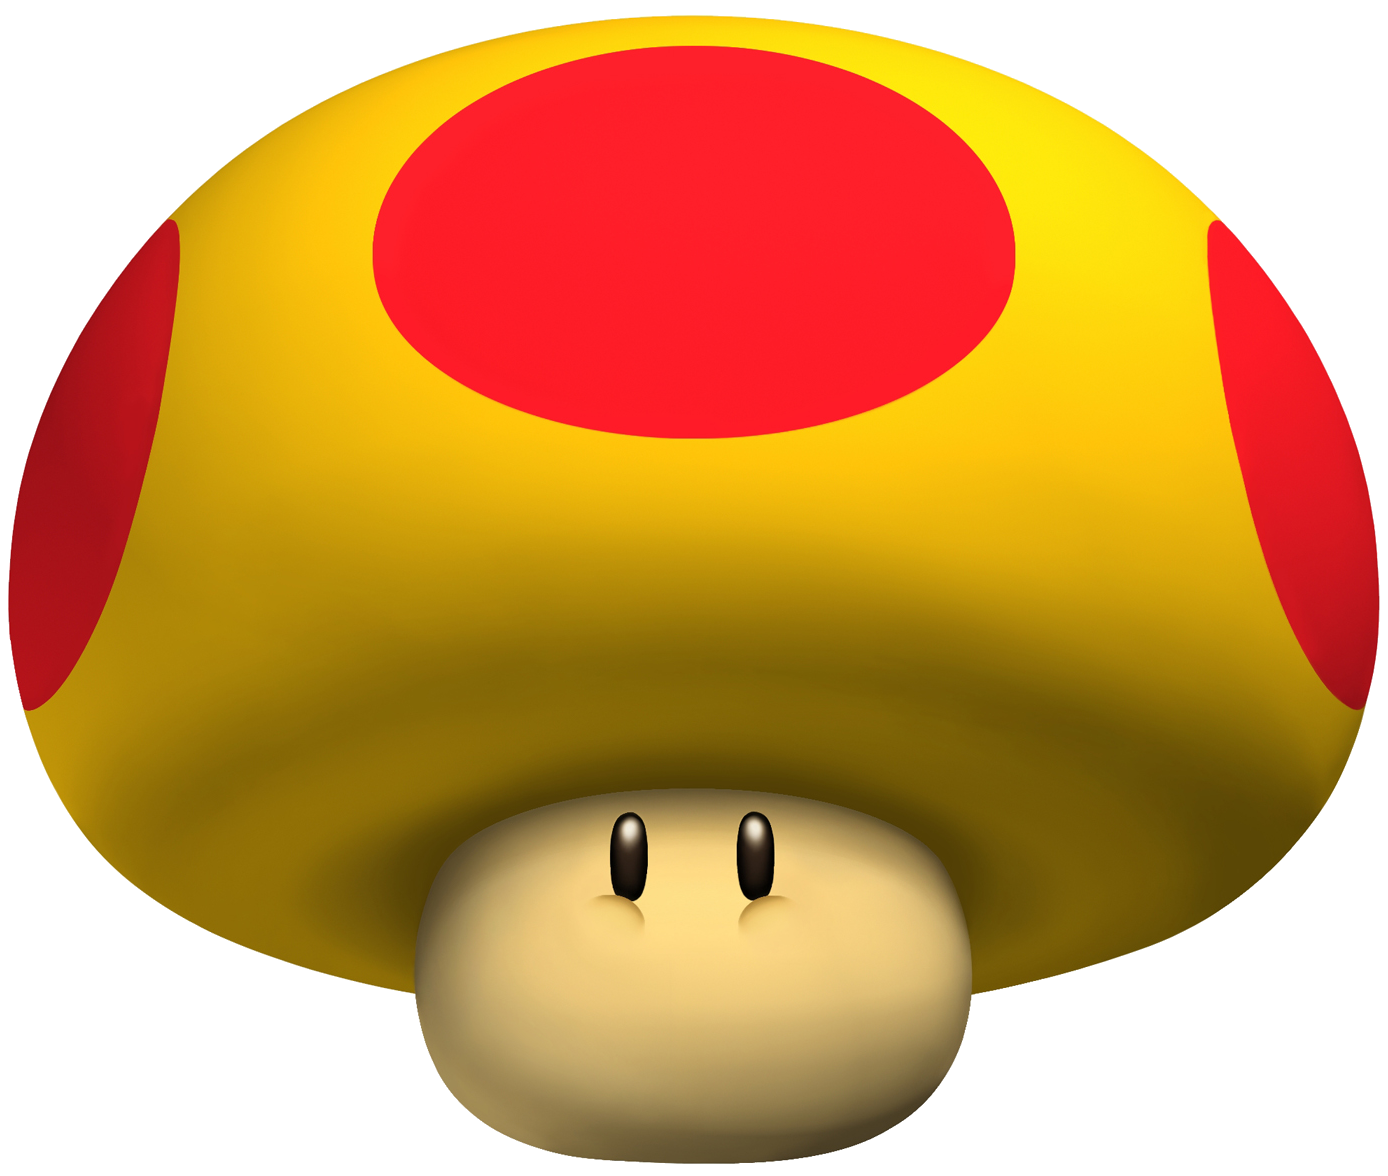 Giga mushroom super minecraft. Mushrooms clipart trivia